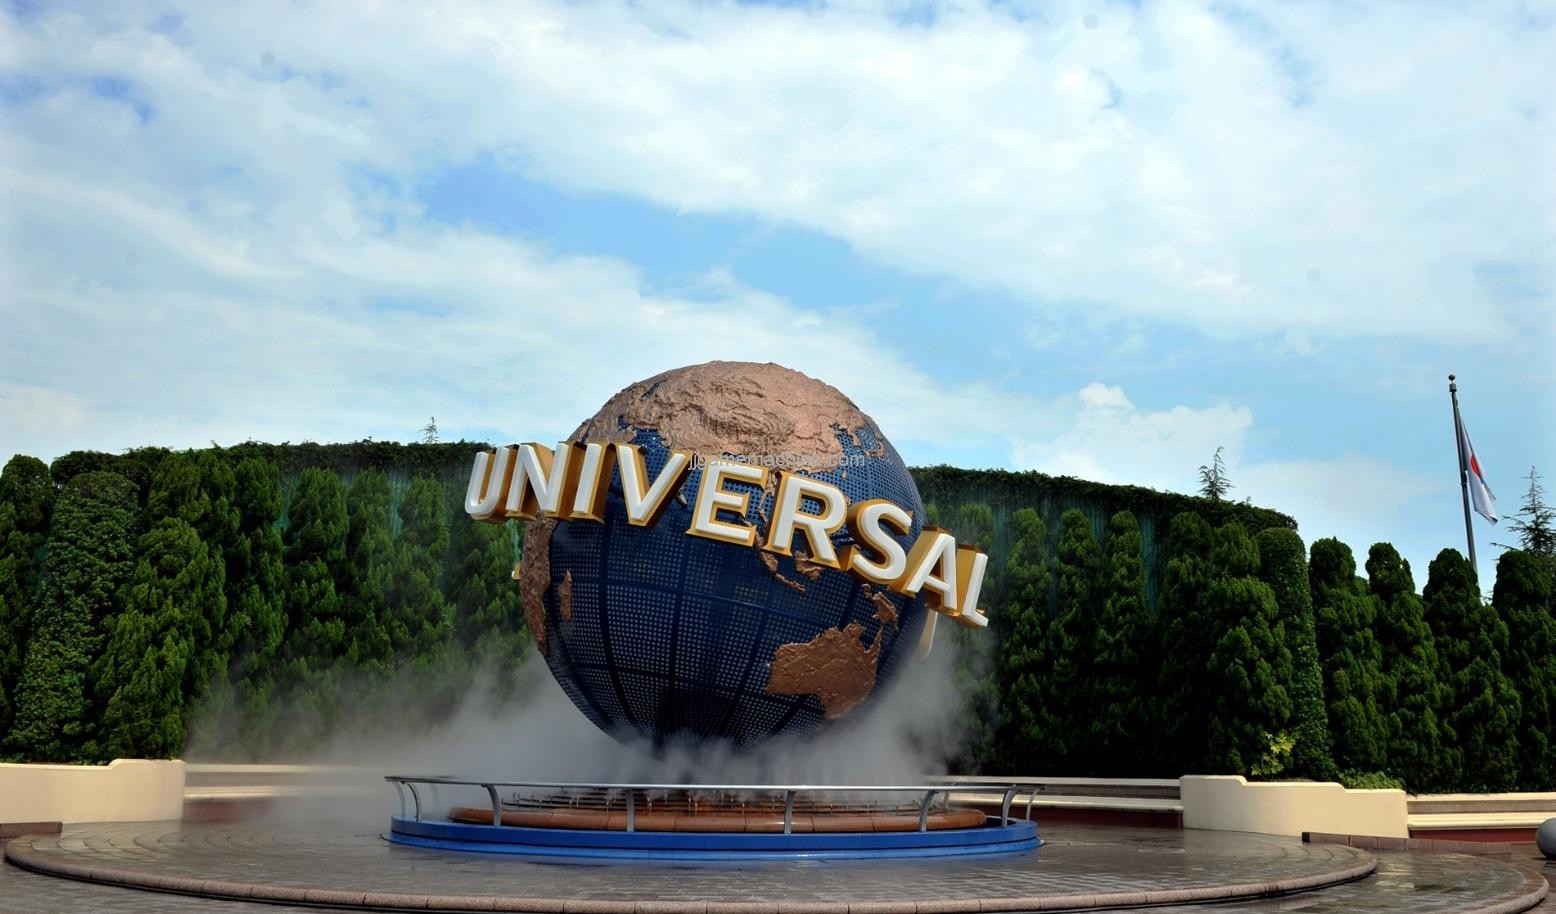 Universal Studios Osaka Super Nintendo World Theme Park has officially opened